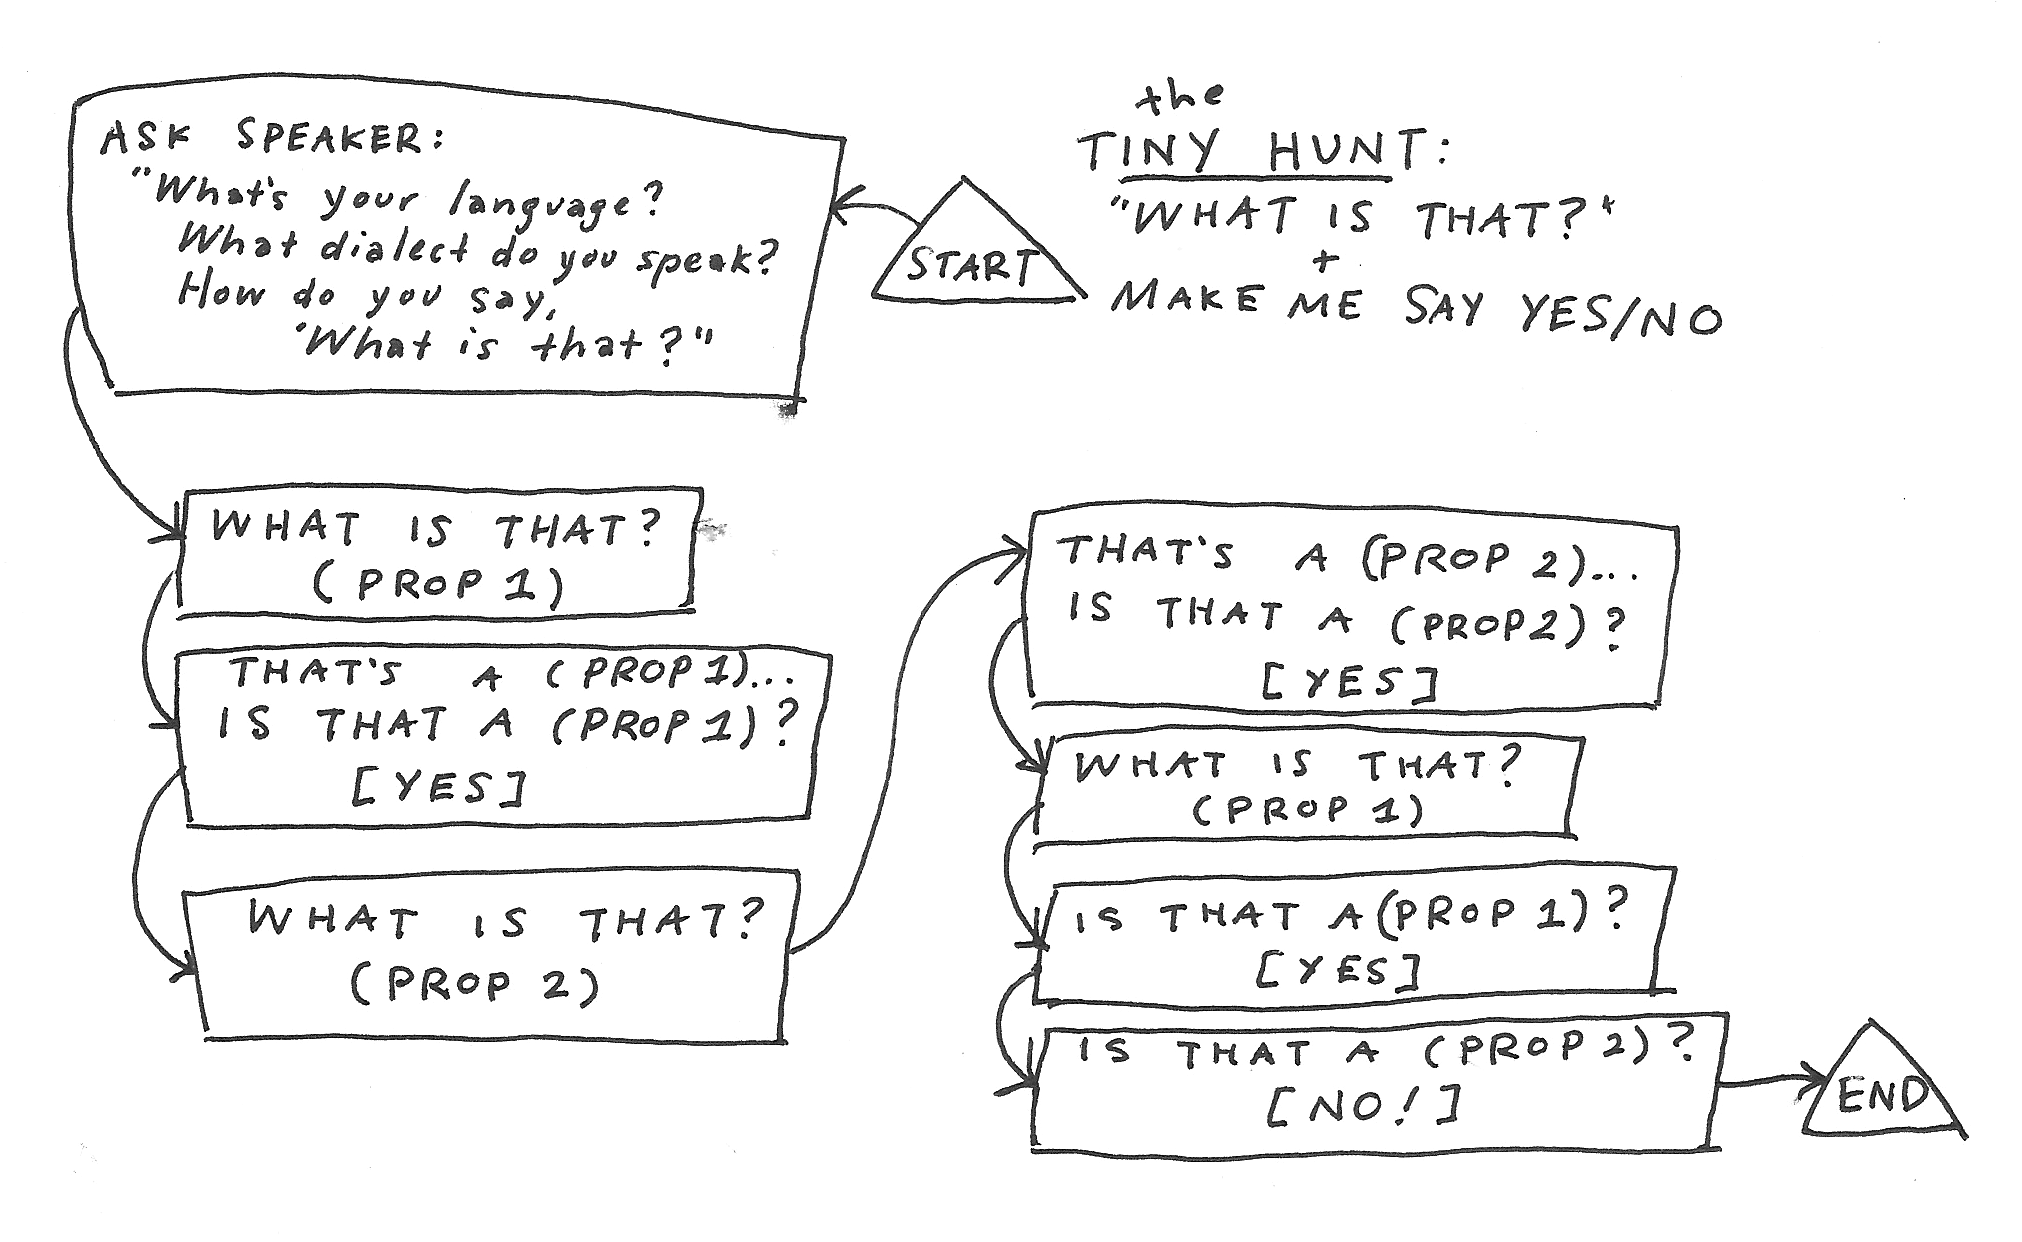 Flowchart above for playing through a Tiny Hunt with a fluent speaker - note that this diagram only shows the HUNTER's questions and statements, not the responses of the FLUENT FOOL.